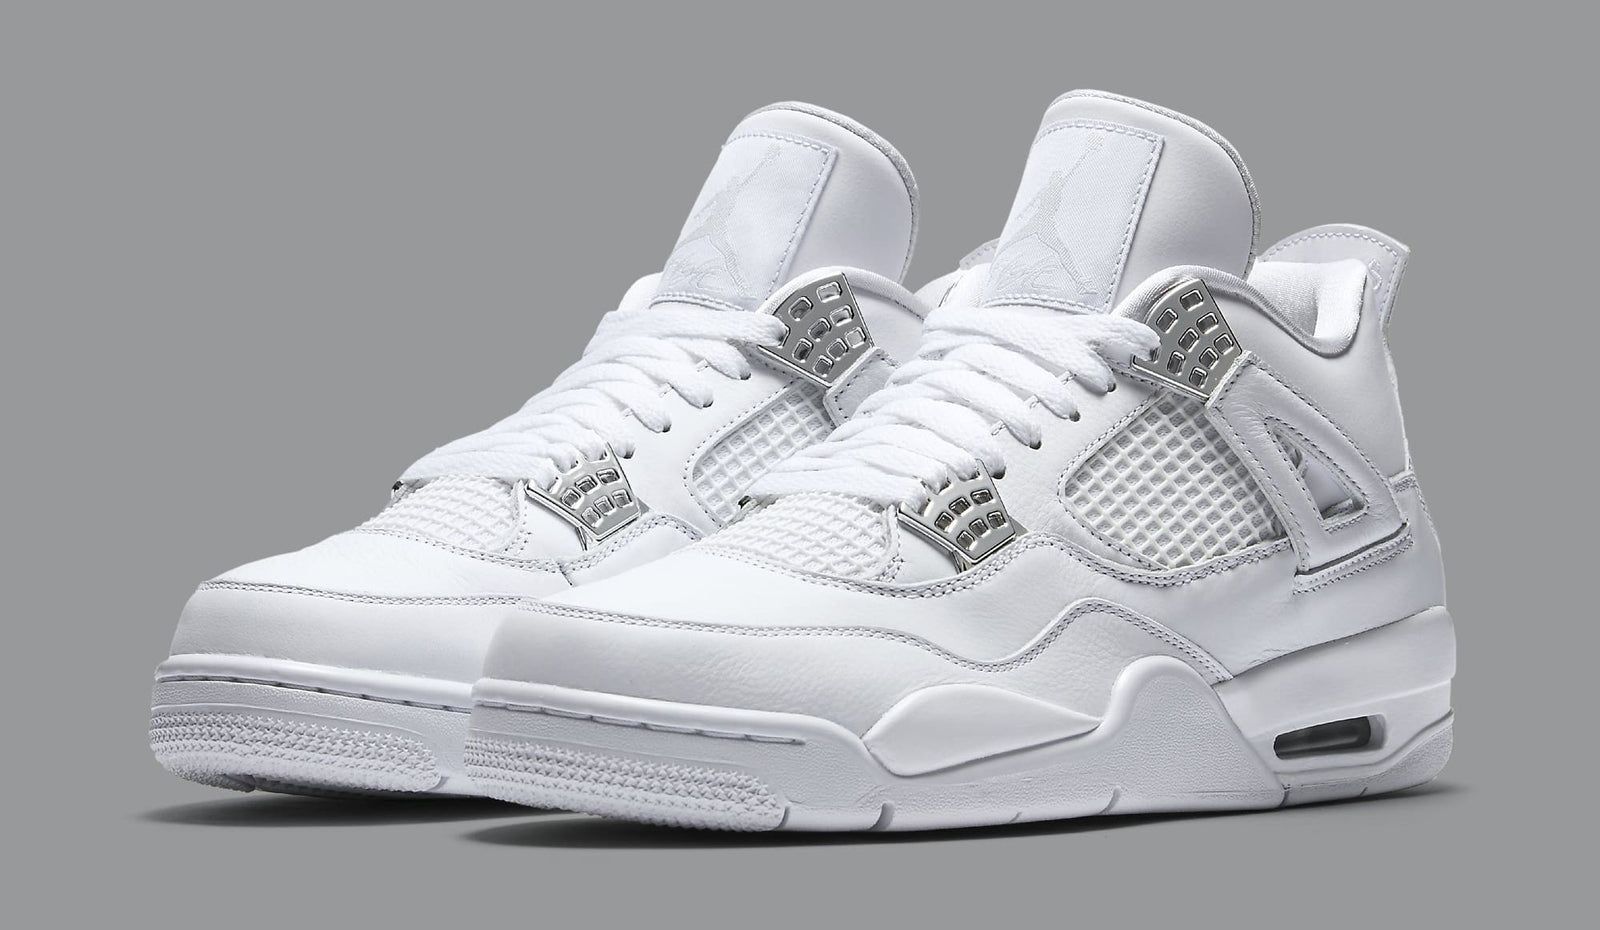 b3377df385c White Air Jordan Retro 4 Pure Money 308497-100 – FOUR KINGS LTD